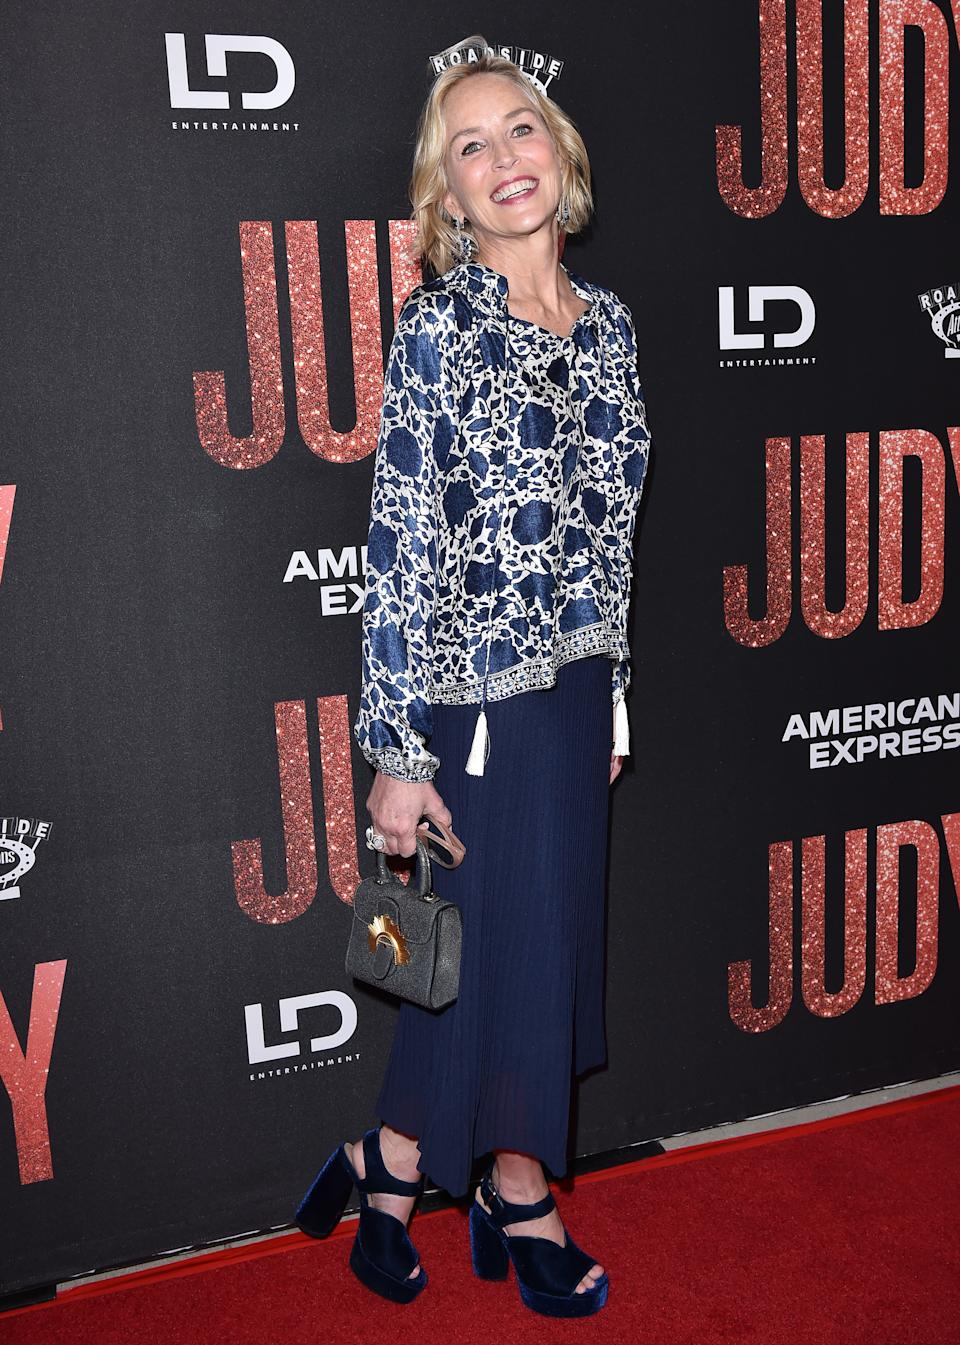 """BEVERLY HILLS, CALIFORNIA - SEPTEMBER 19: Sharon Stone attends the LA Premiere of Roadside Attraction's """"Judy"""" at Samuel Goldwyn Theater on September 19, 2019 in Beverly Hills, California. (Photo by Axelle/Bauer-Griffin/FilmMagic)"""